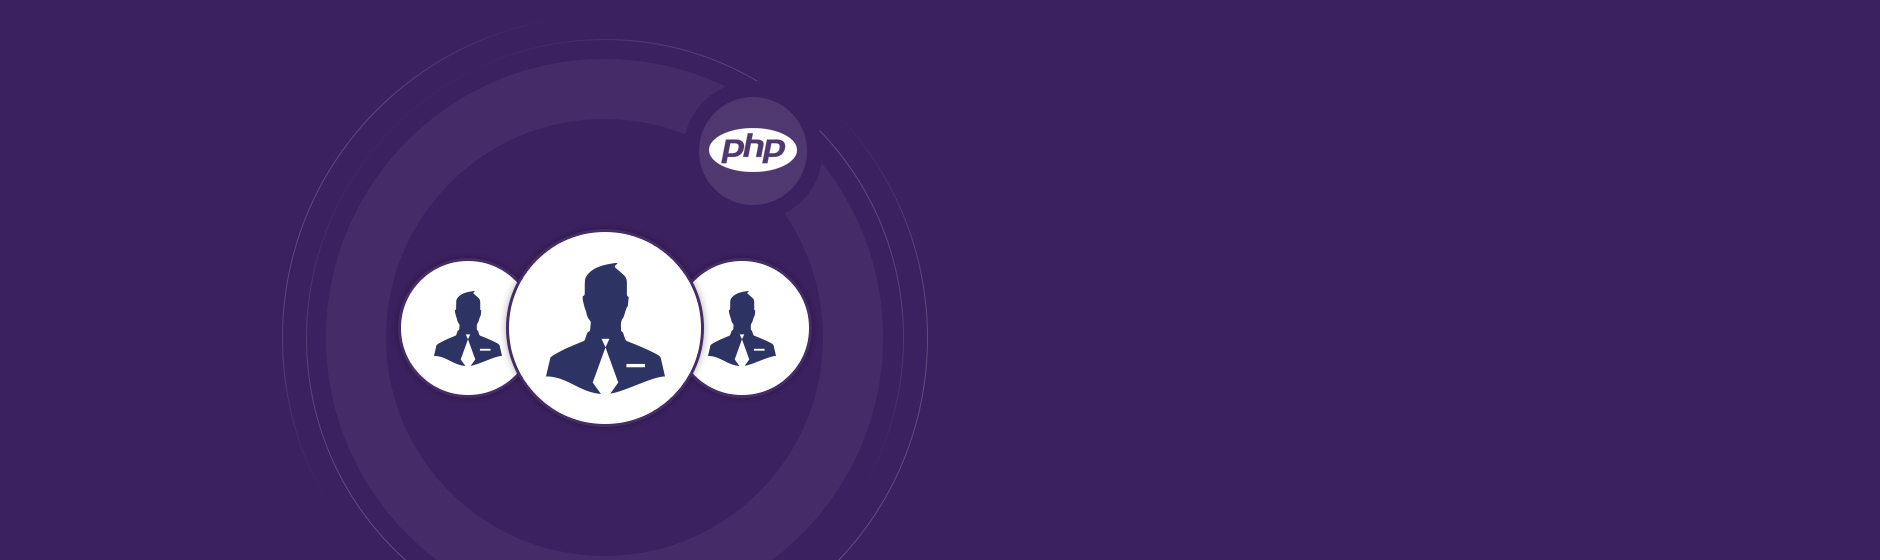 php experts Mindfire solutions provides expert php development services from india, gaining expertise from years of experience in php web development and php application development we have been working in php for the last 10+ years and have gained expertise on various php application development frameworks and php services.